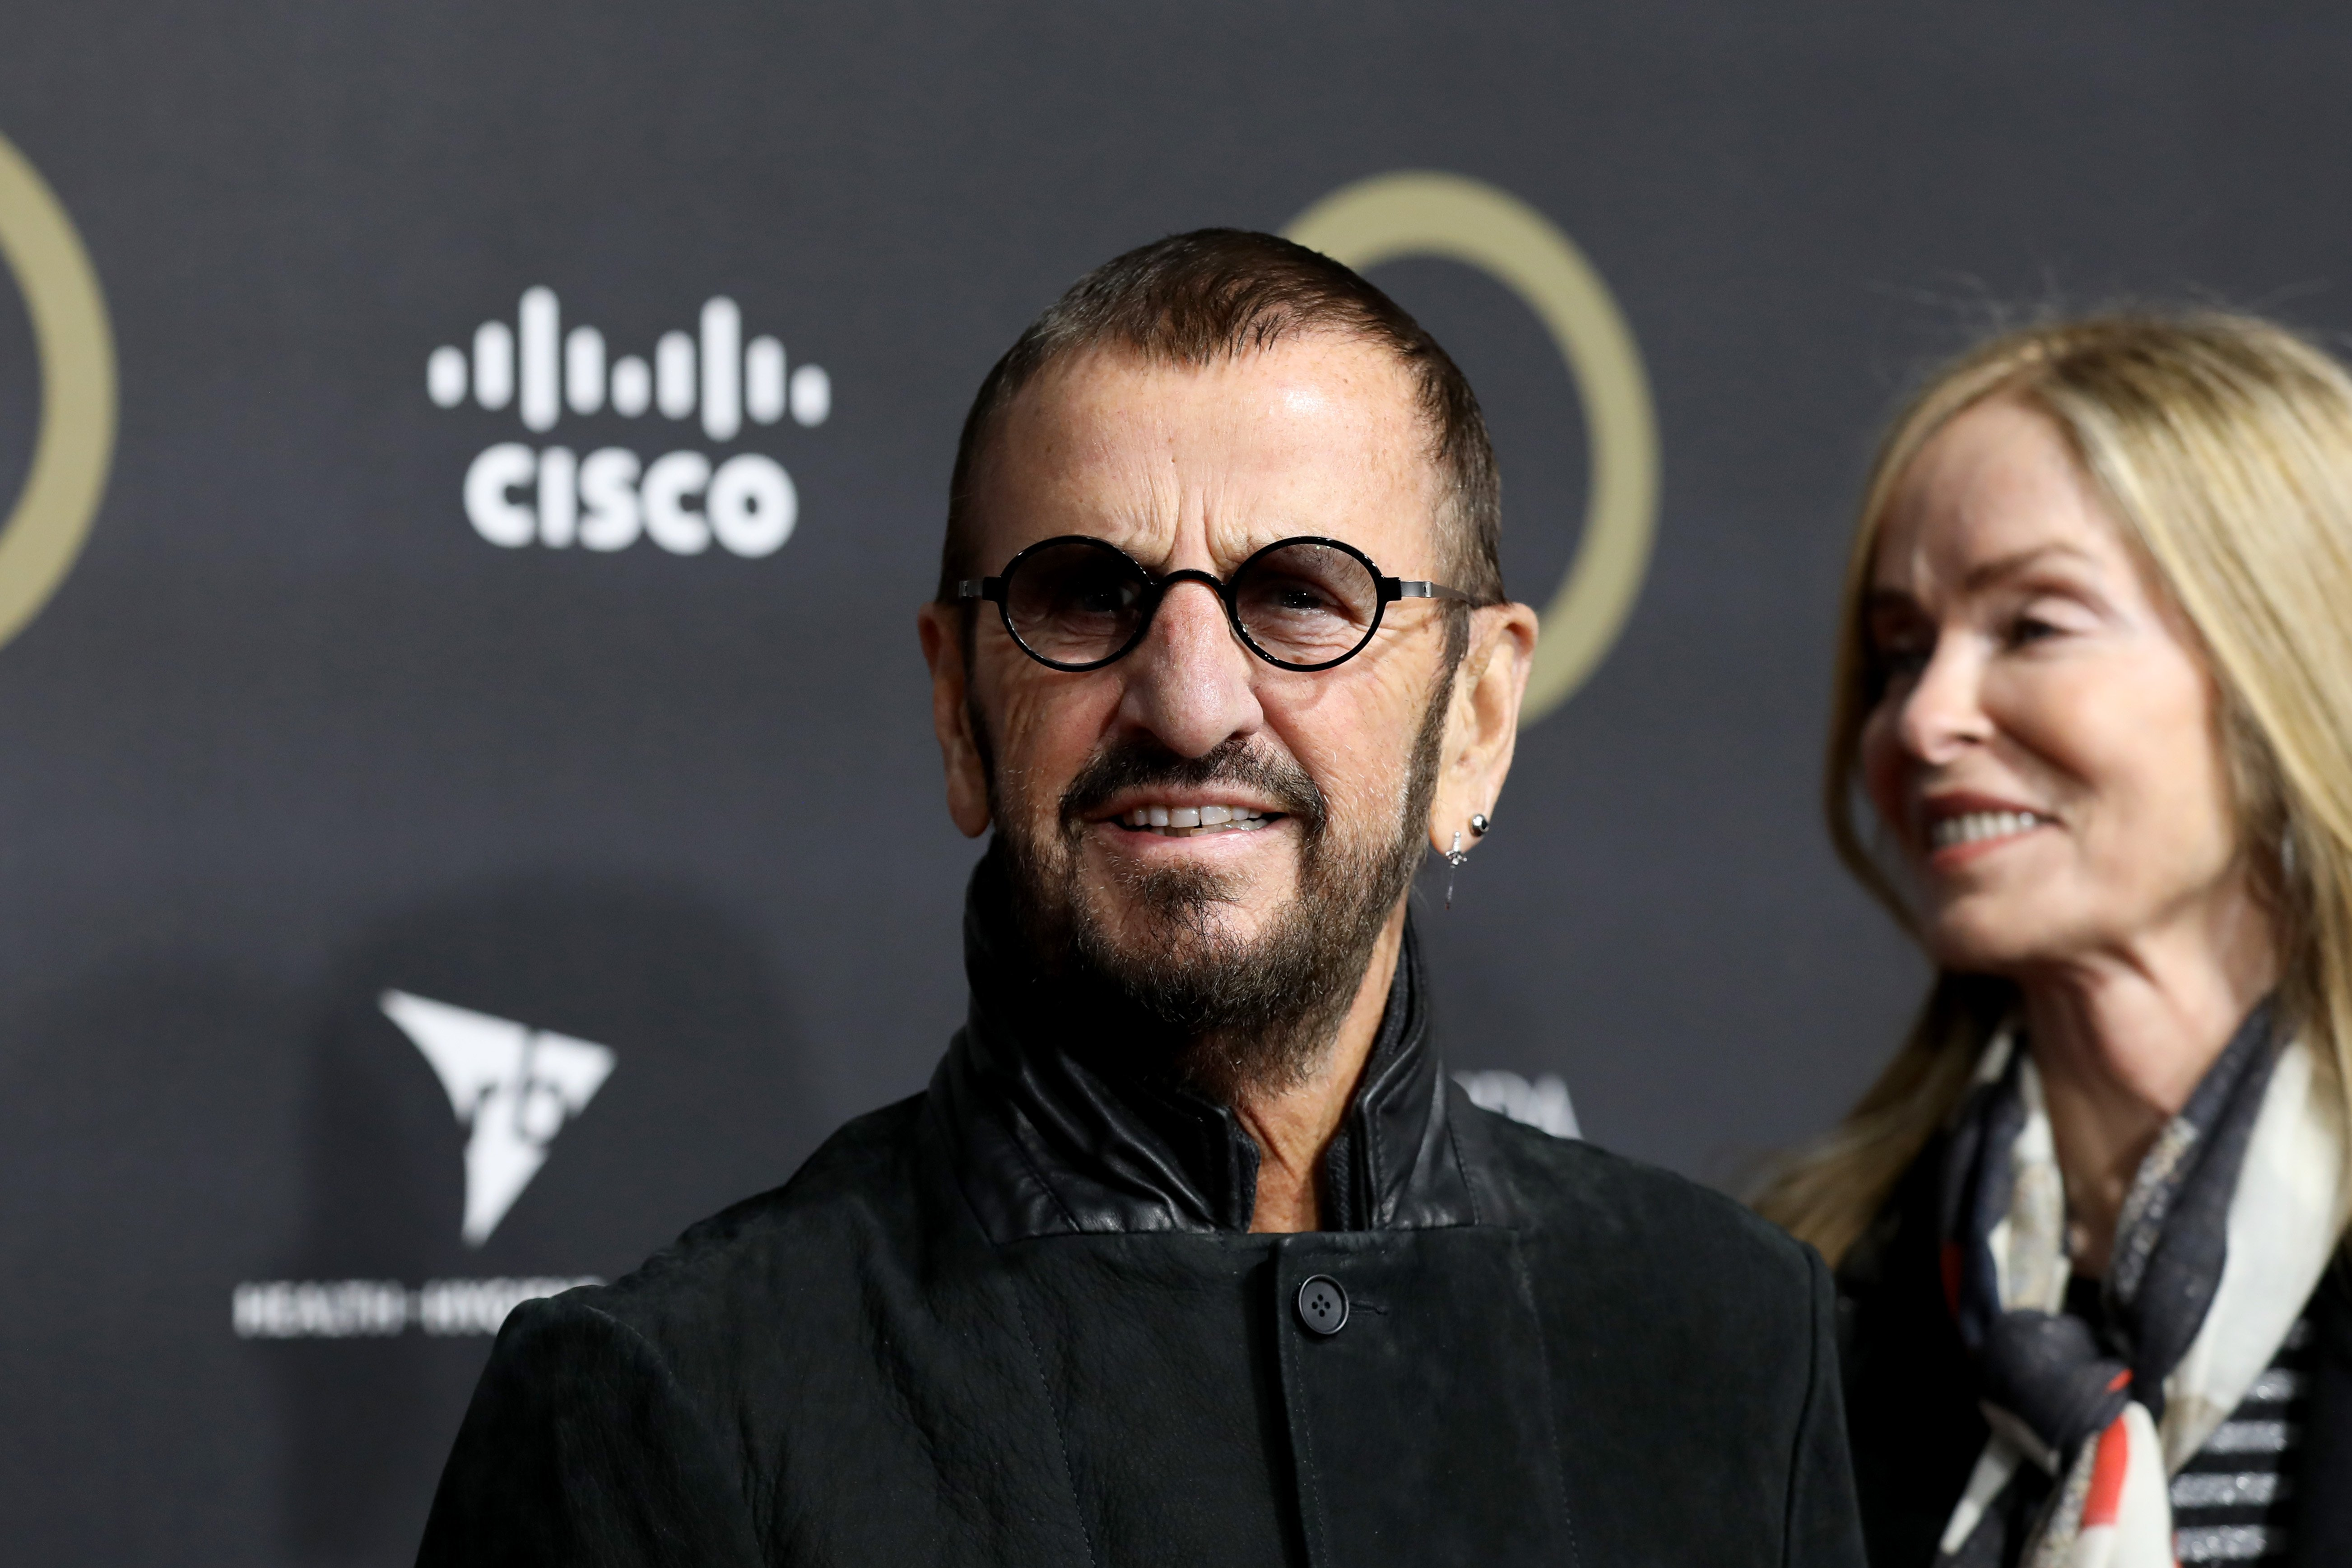 Image Credits: Getty Images / Tristan Fewings | Ringo Starr attends the 2019 Global Citizen Prize at the Royal Albert Hall on December 13, 2019 in London, England.